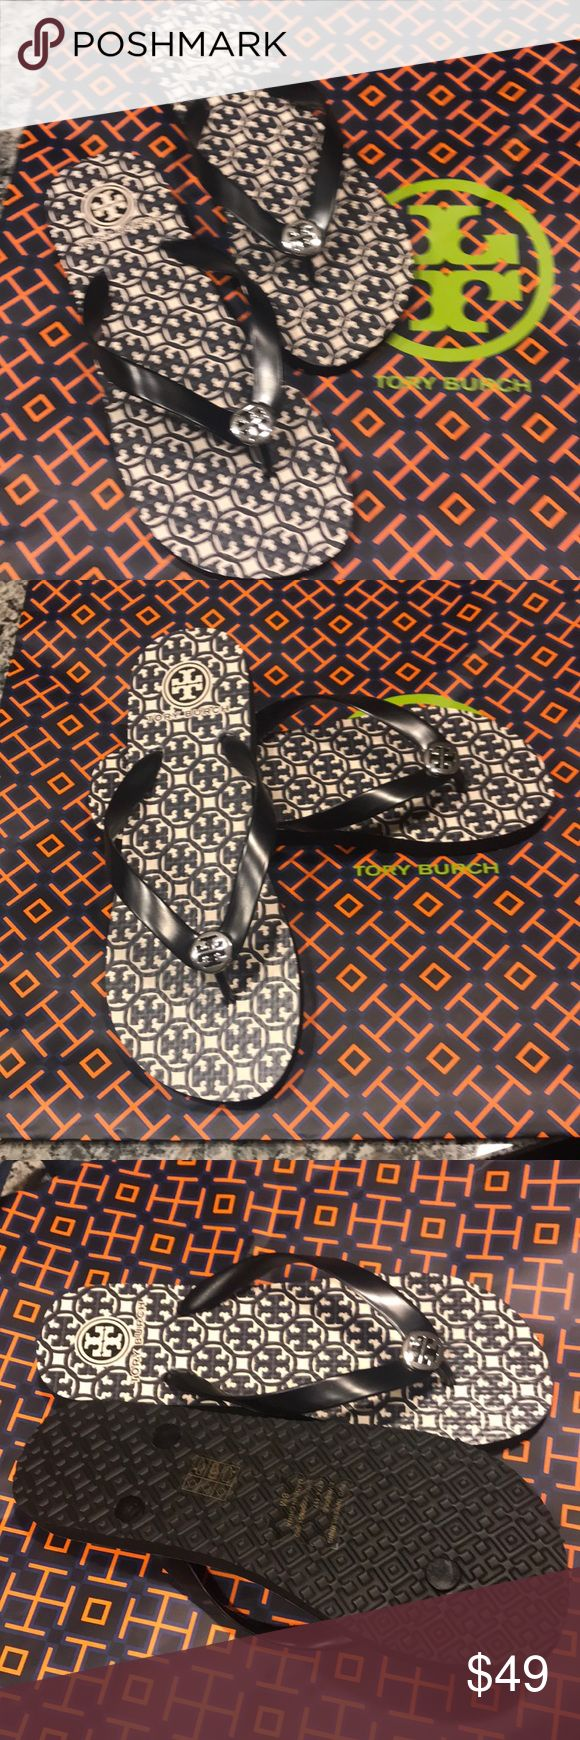 Tory Burch flip flops Brand new, tags attached TORY BURCH FLIP FLOPS in ladies size 8. It is the most beautiful design with silver hardware, grab it at this great price... Tory Burch Shoes Slippers